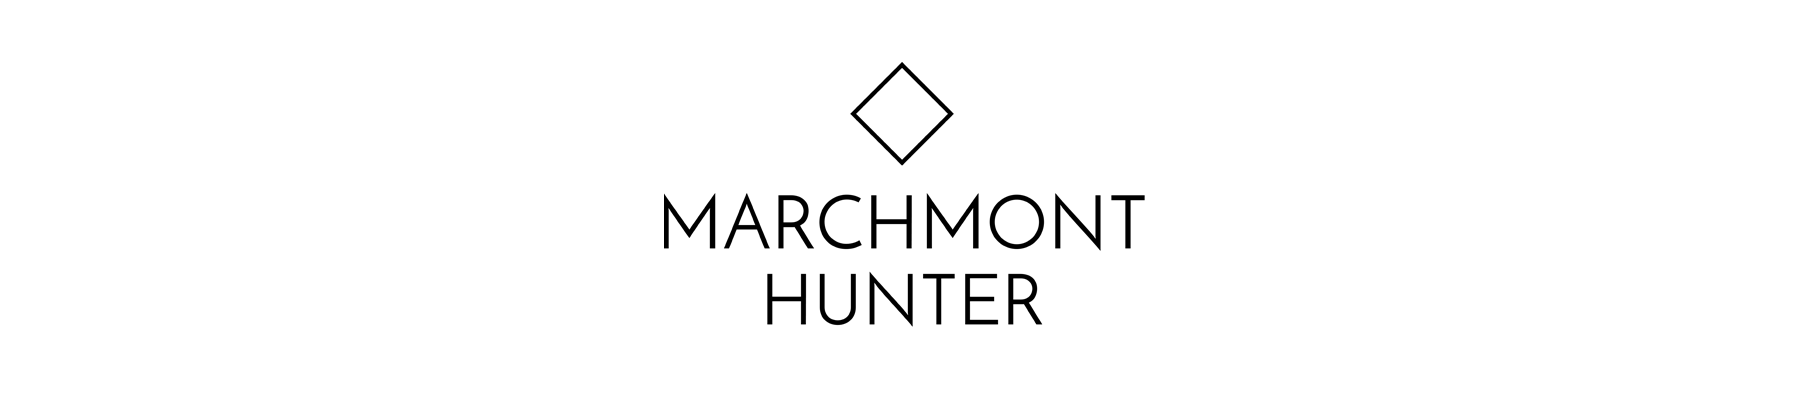 Marchmont Hunter